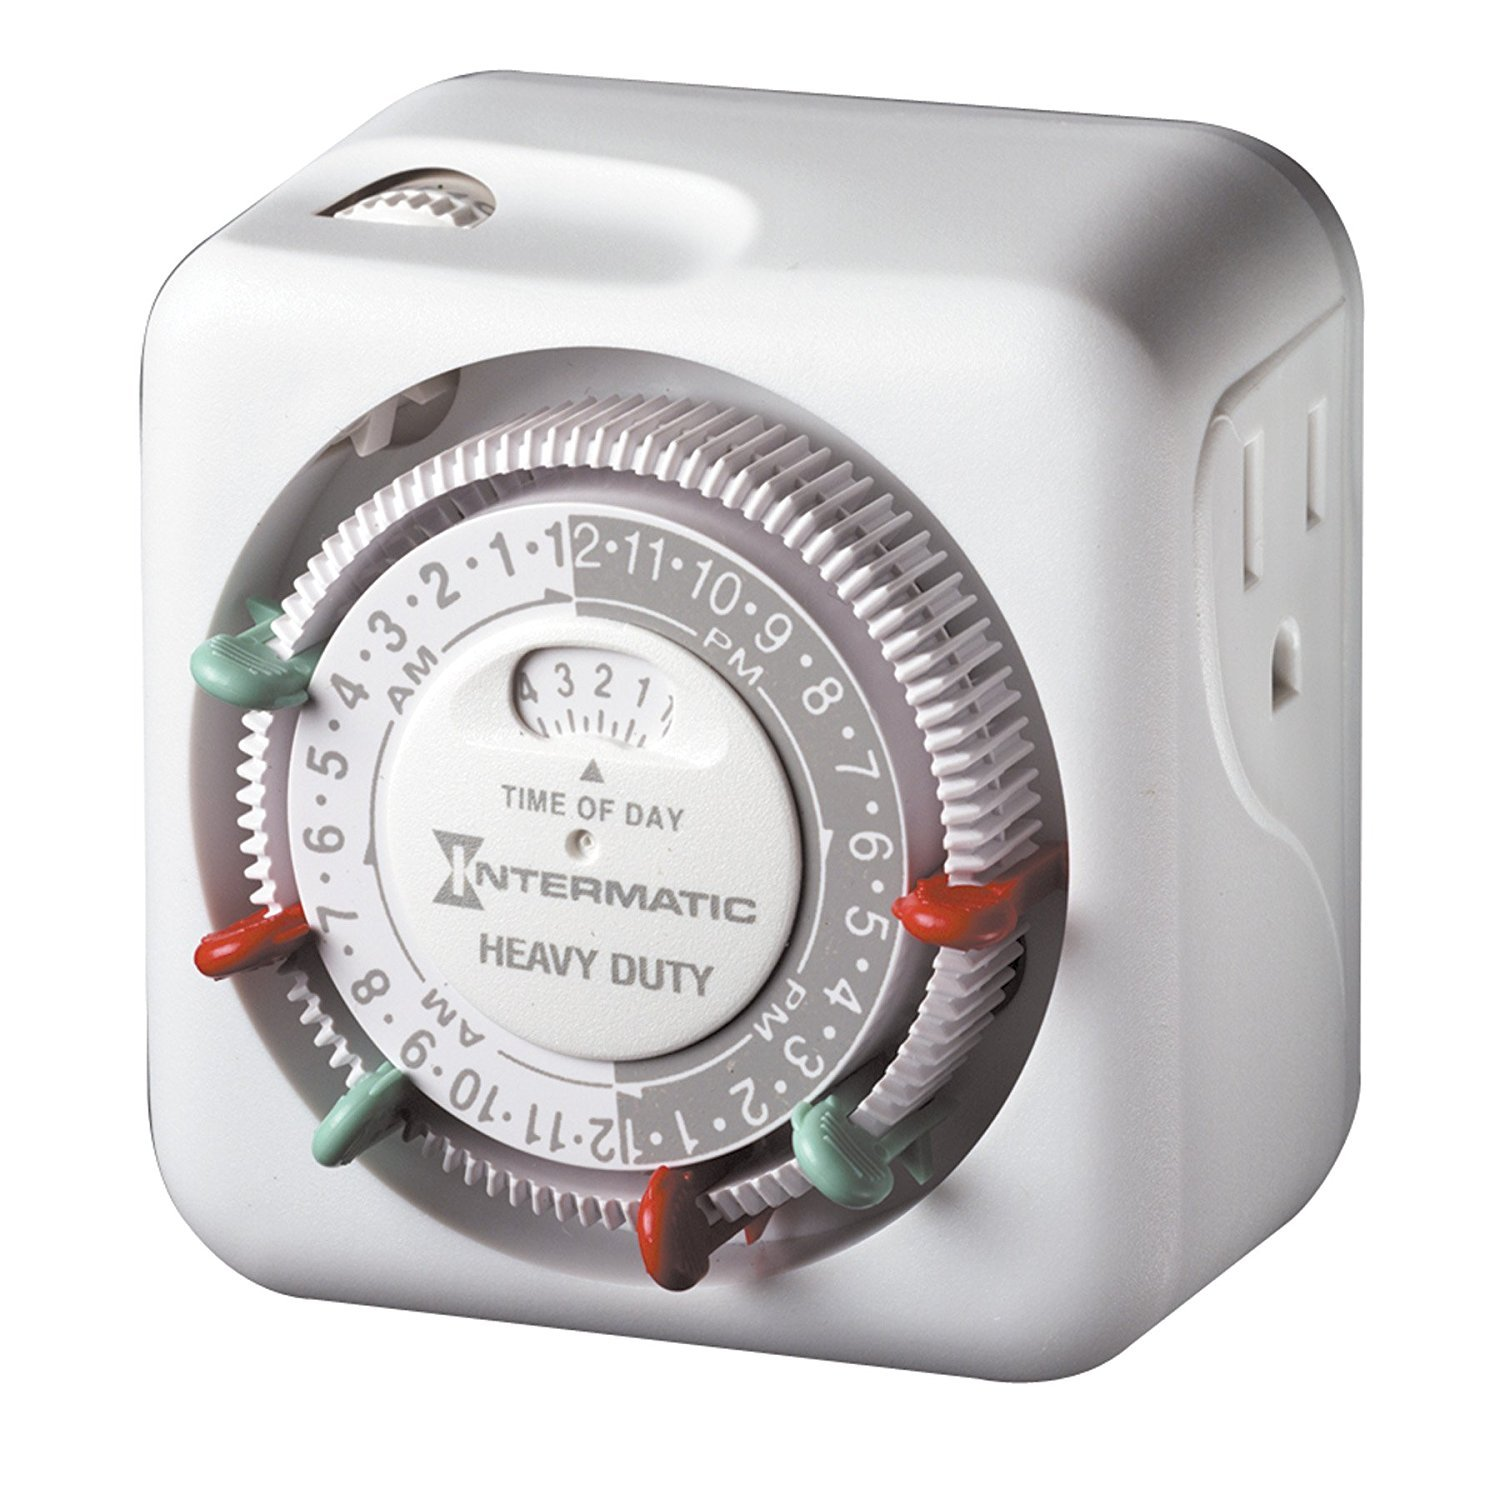 Intermatic TN311 15 Amp Heavy Duty Grounded Timer, 3 Pack